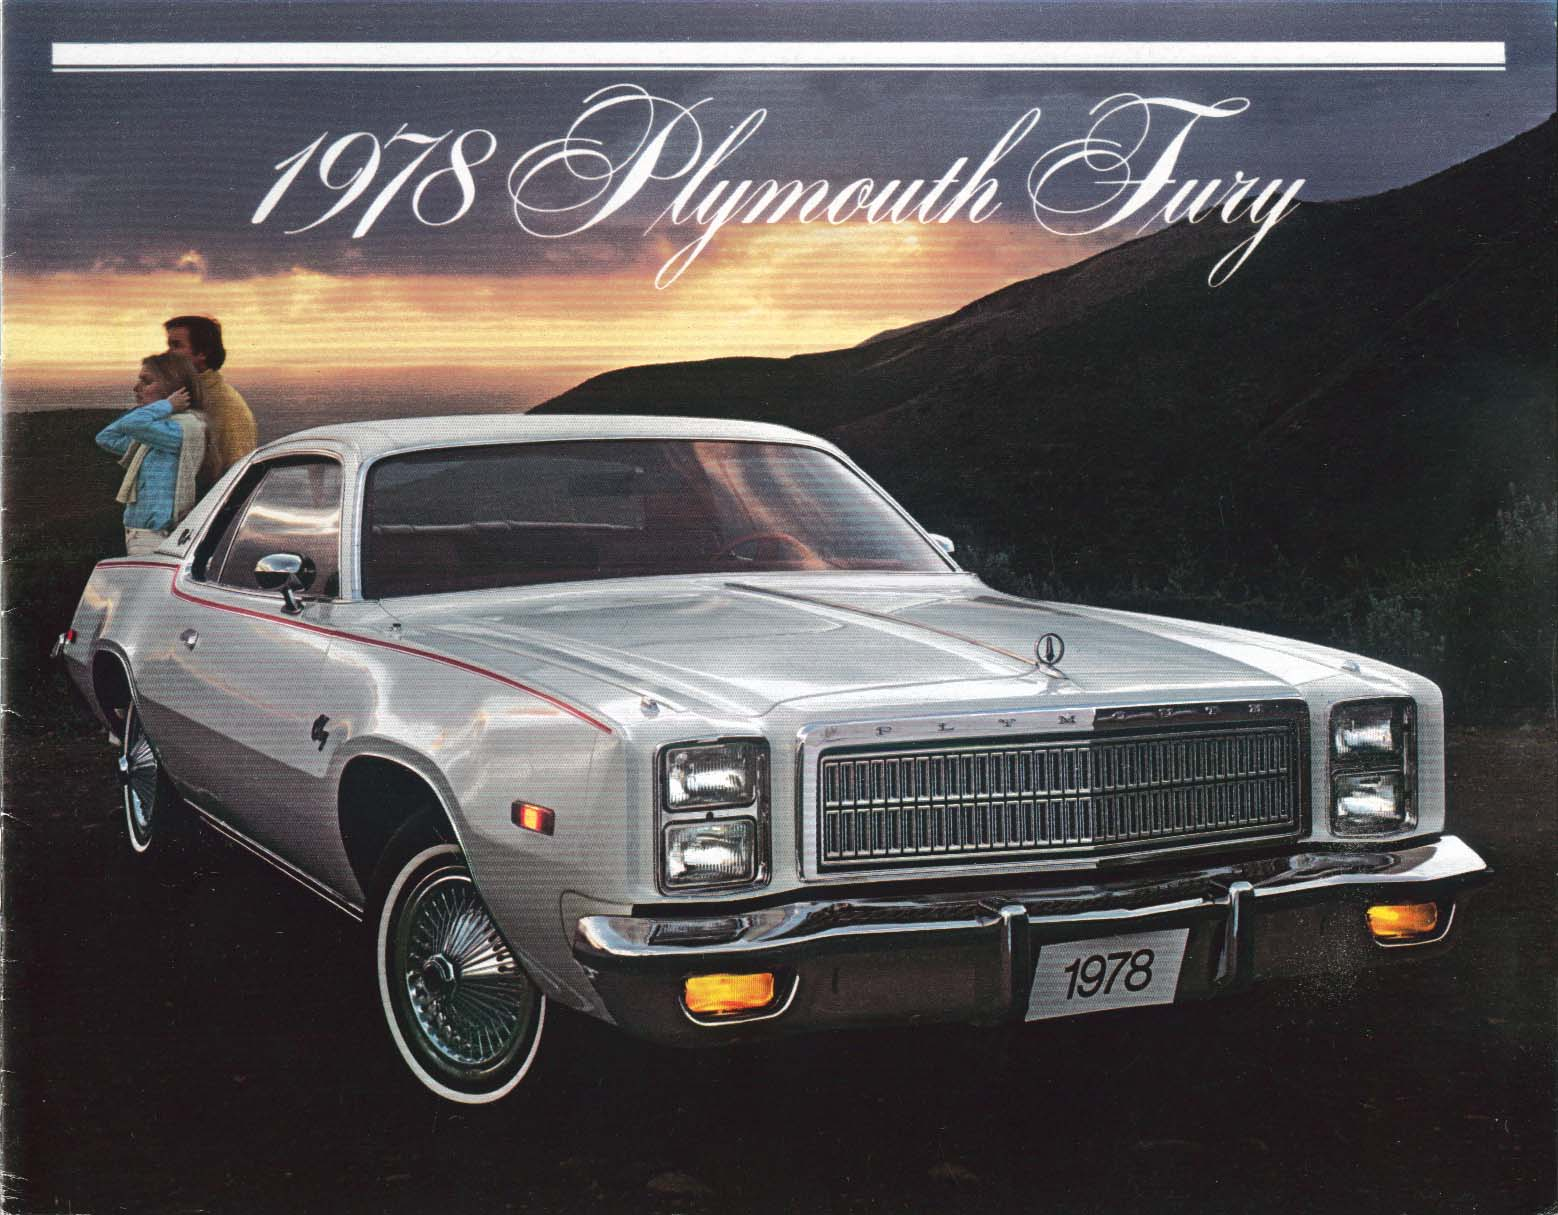 Image for 1978 Plymouth Sport Salon Suburban Fury sales brochure